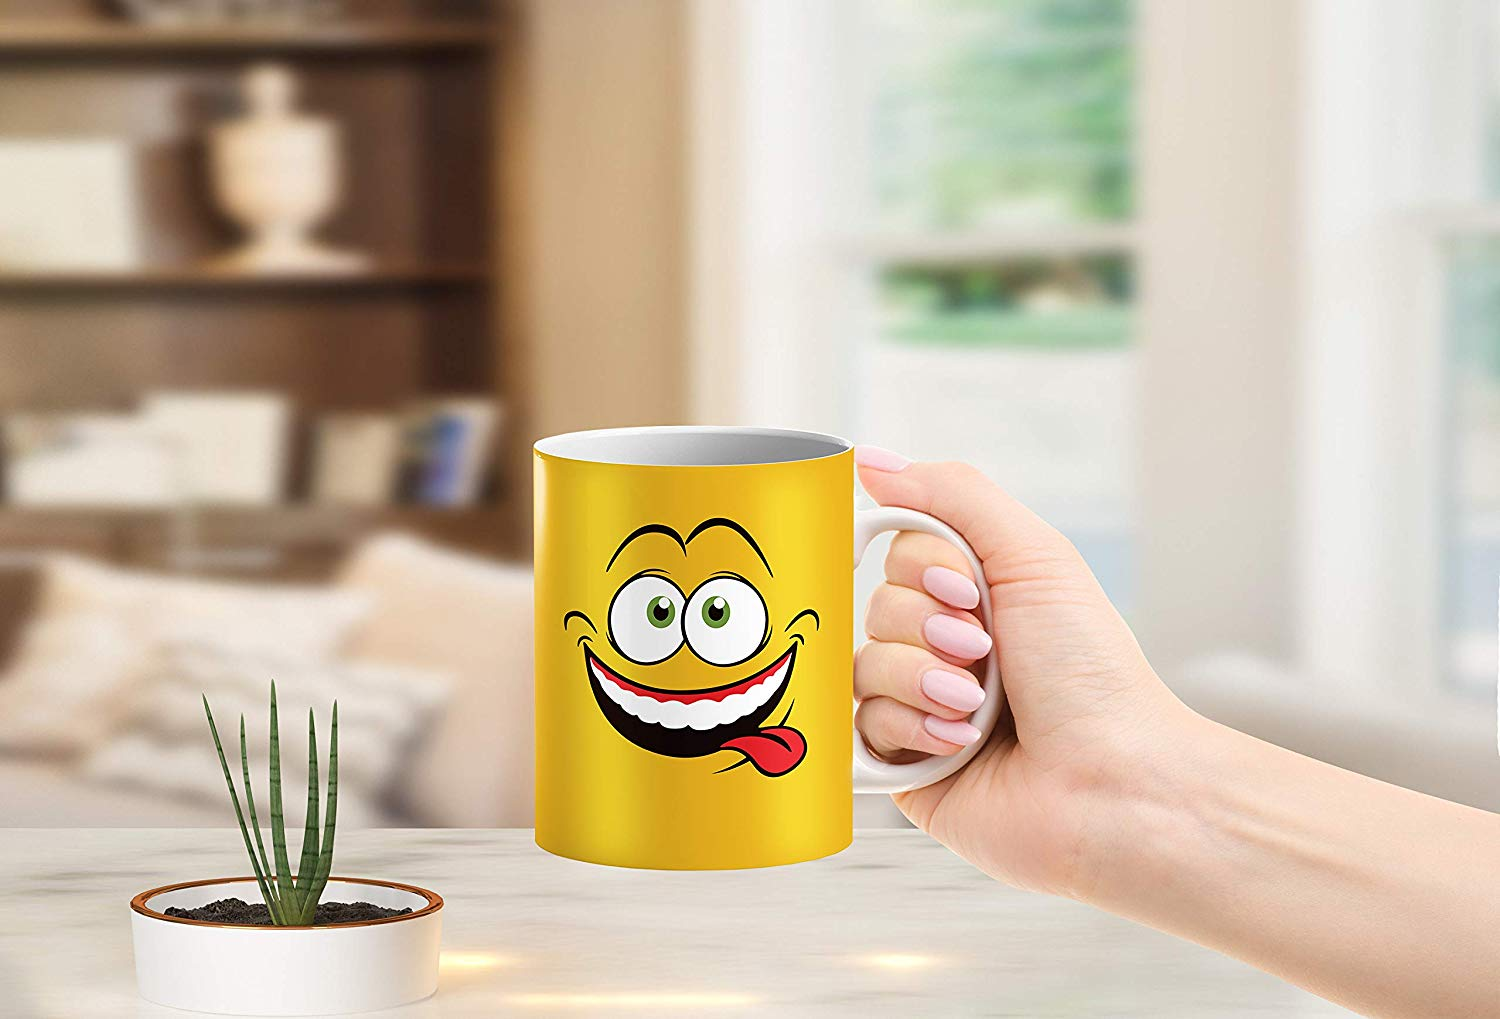 Heat Sensitive Color Changing Coffee Mug Funny Coffee Cup Yellow Drunk Funny Face Design Funny Gift Idea B079FWN7ZQ 3